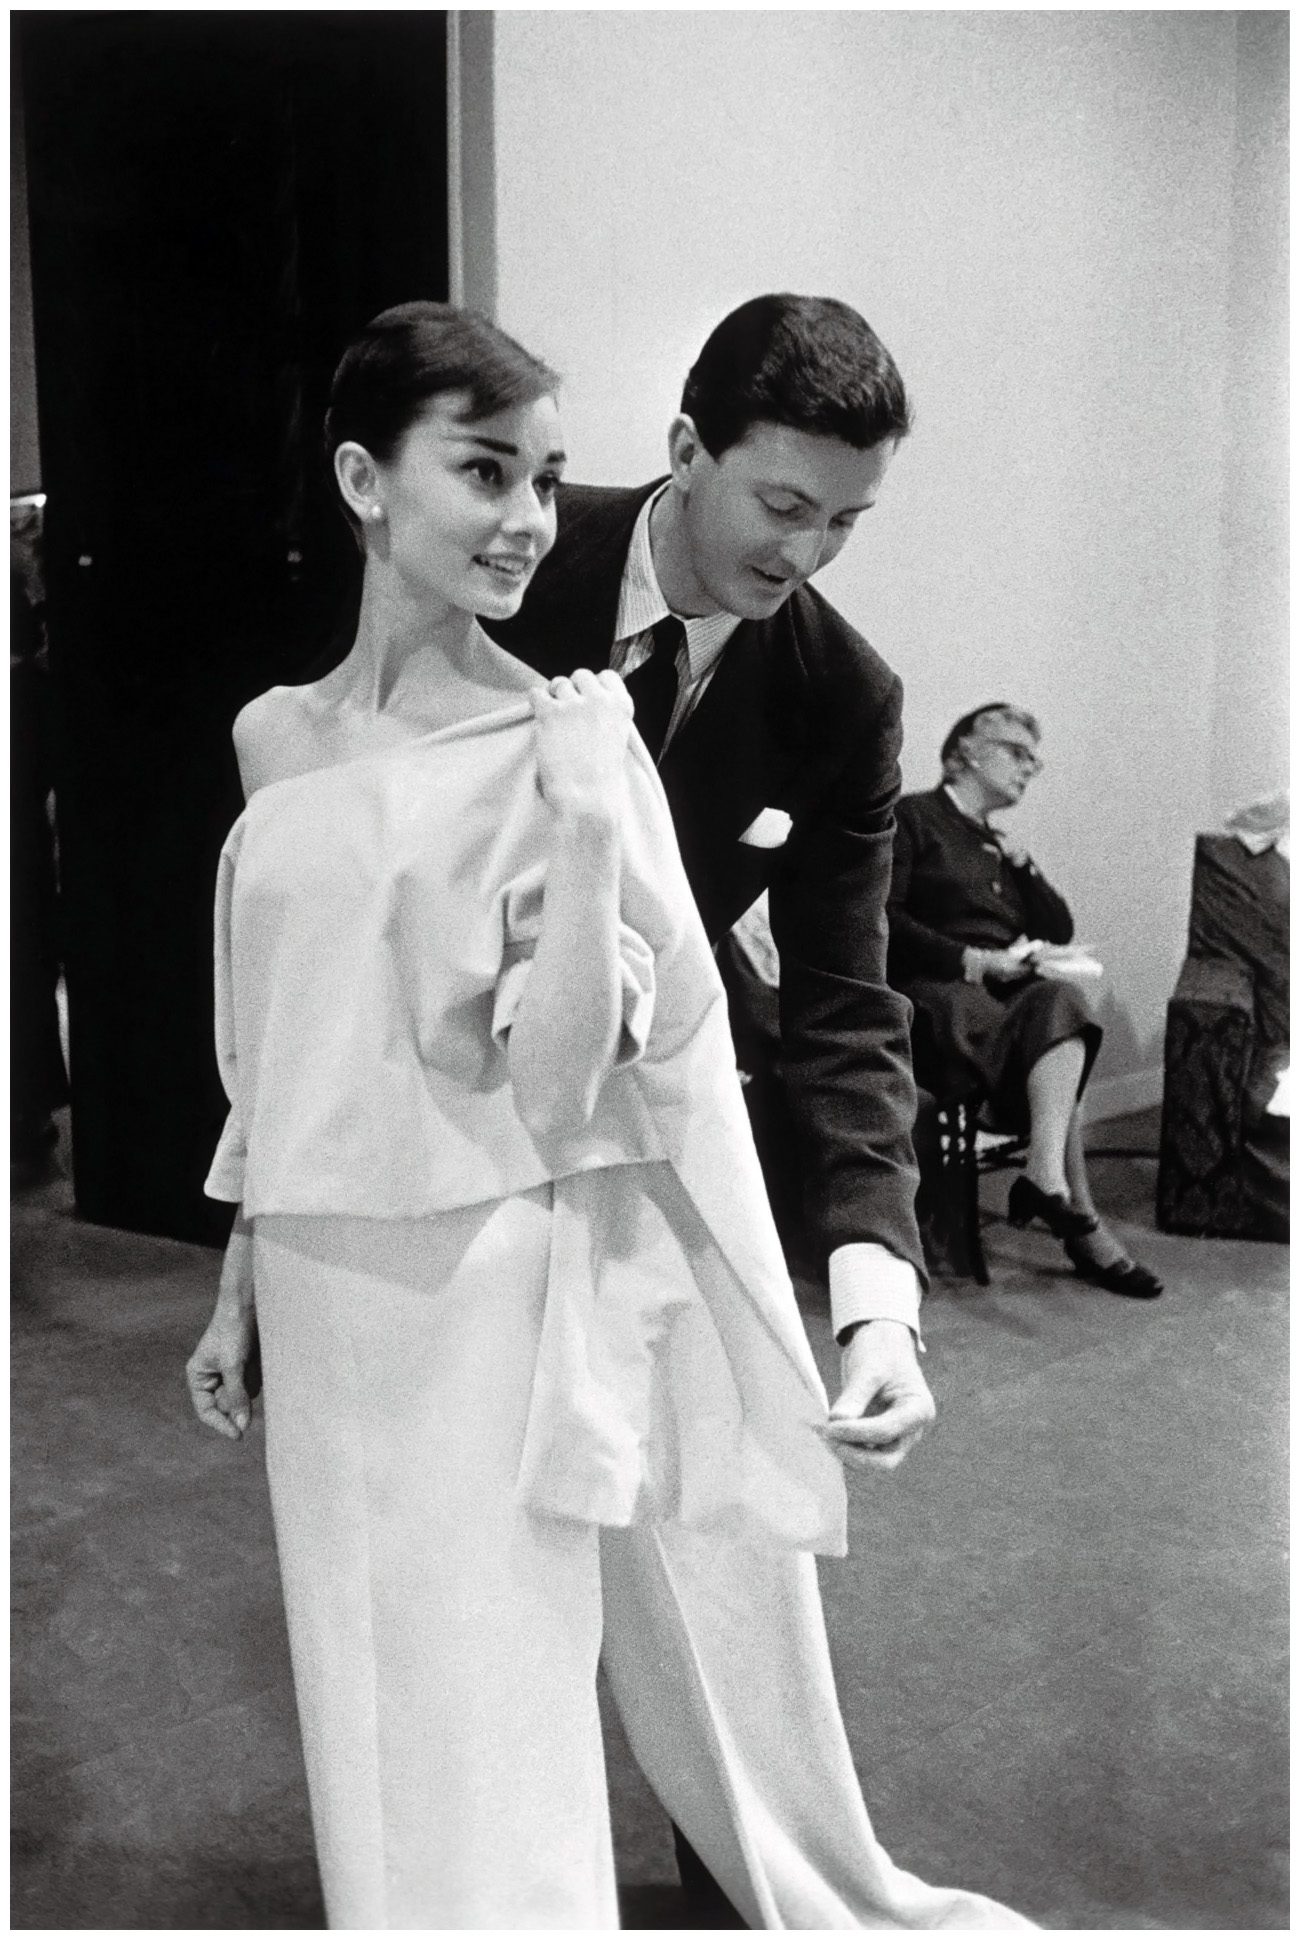 actress-audrey-hepburn-with-h-givenchy-vogue-conde-nast-publications.jpg